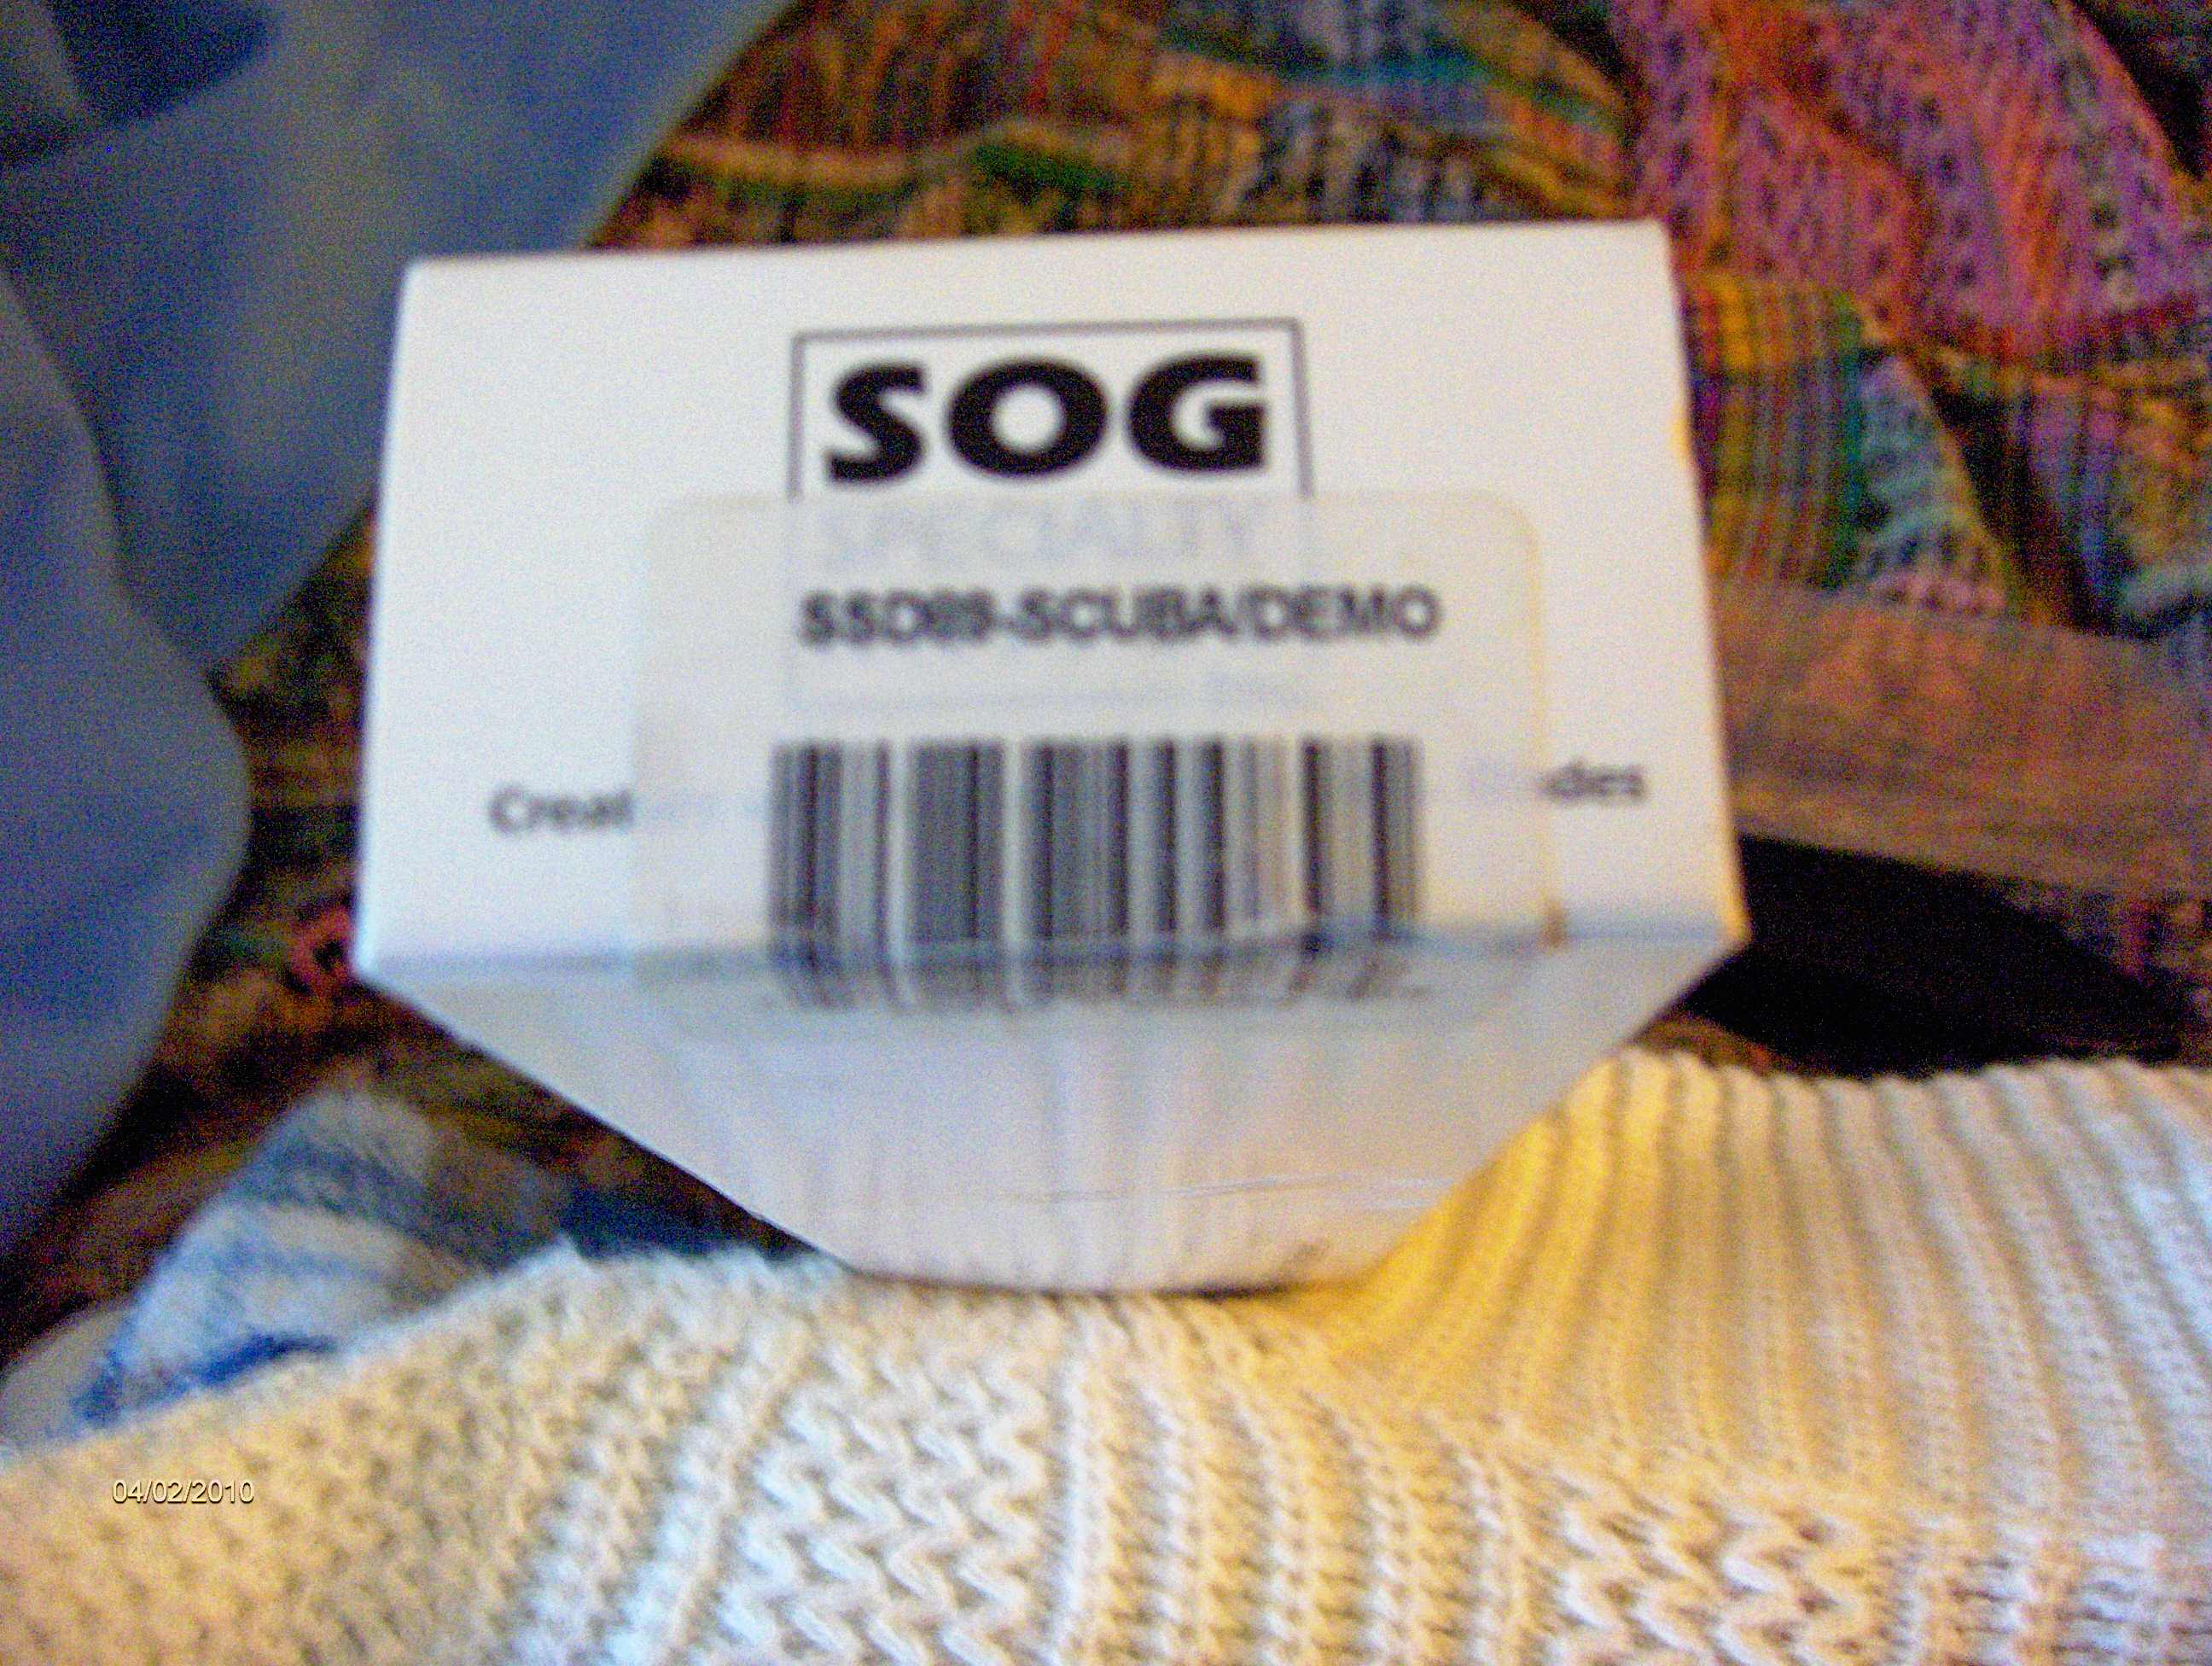 SOG Scuba Demo Box label